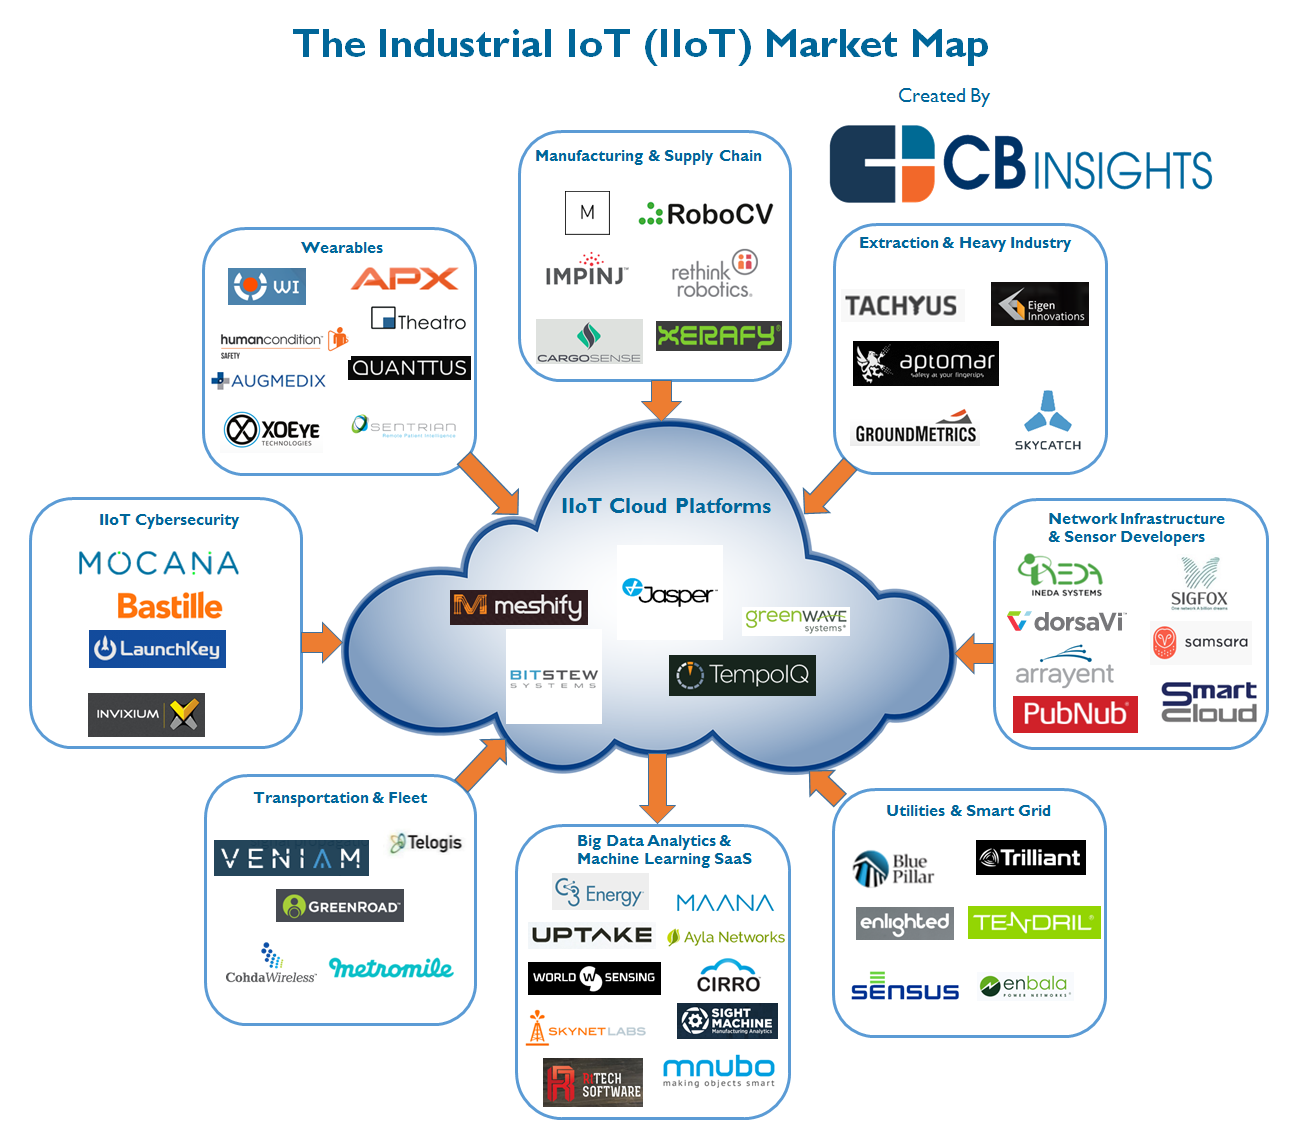 56 Startups Disrupting the Industrial IoT Iot, Start up